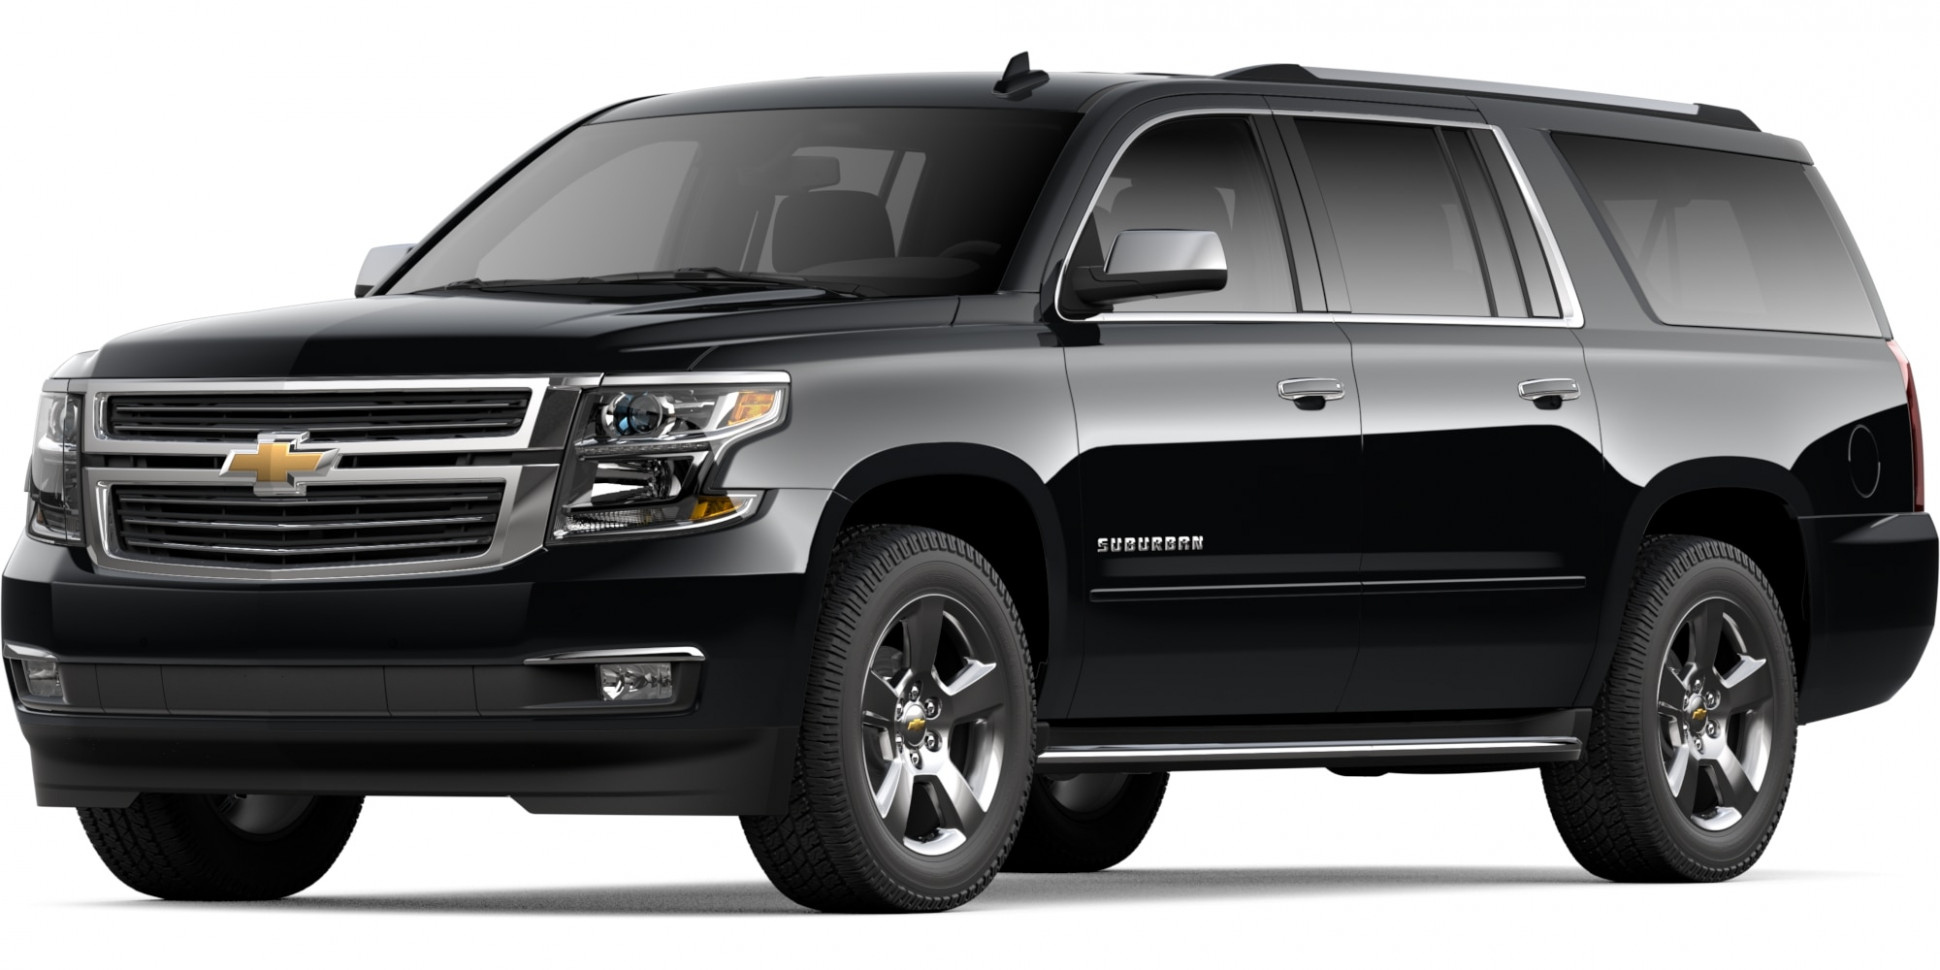 11 Chevy Suburban | Large SUV | 11, 11, or 11 Seat Options - 2020 chevrolet suburban xlt